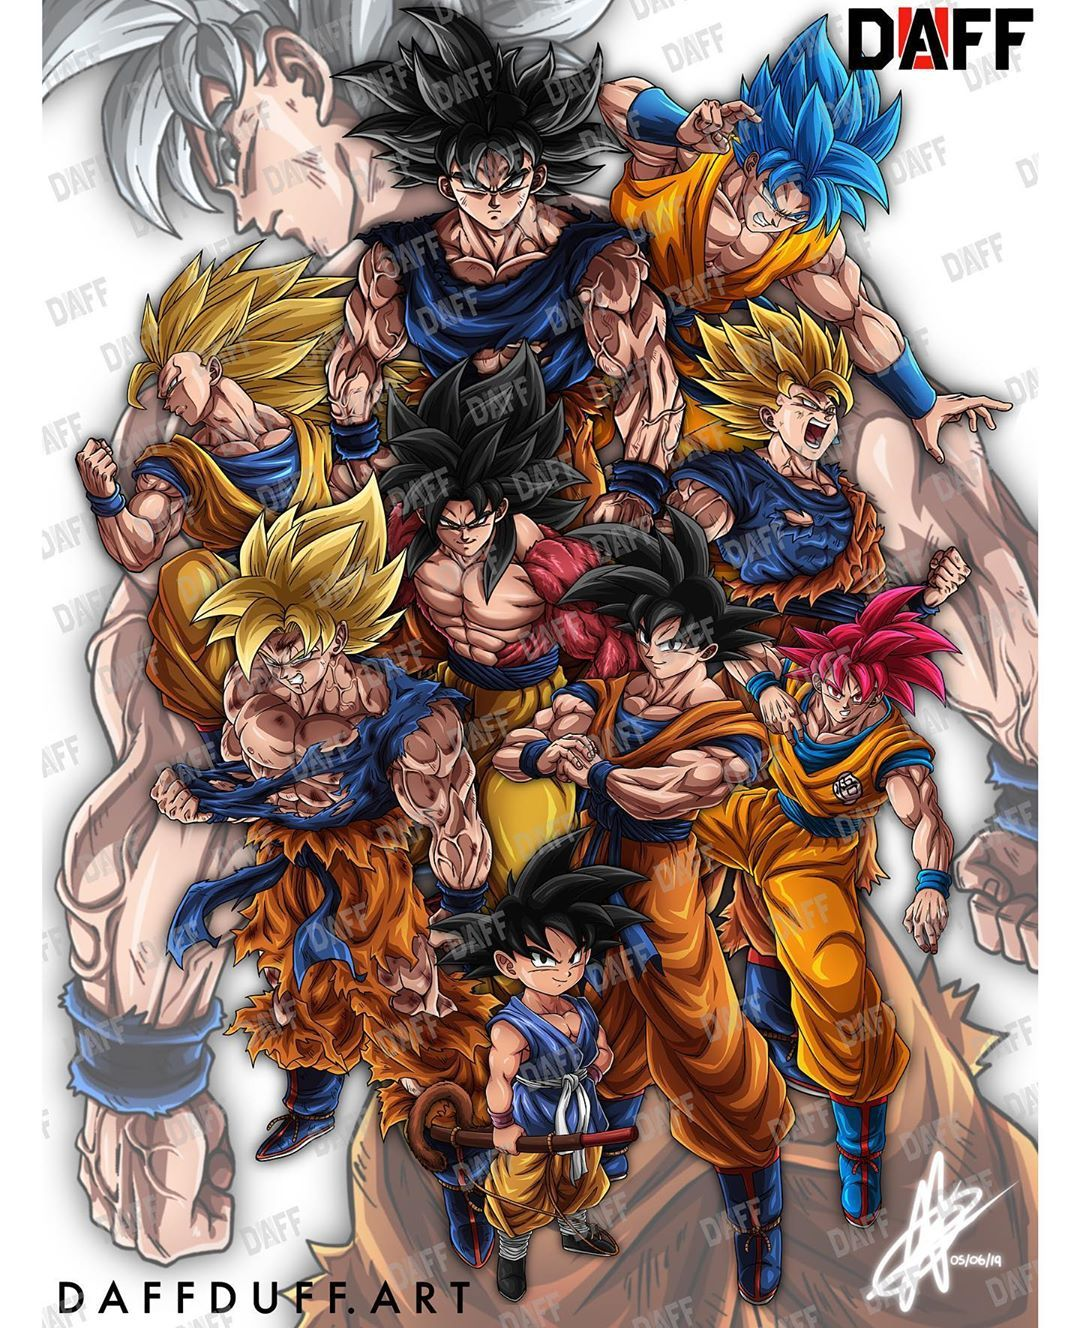 """Daffduff on Instagram: """"The legacy of Goku. 🐉🐉🐉 . . A closer look at the giveaway Poster. As well as the chance to announce that I've officially started taking…"""""""